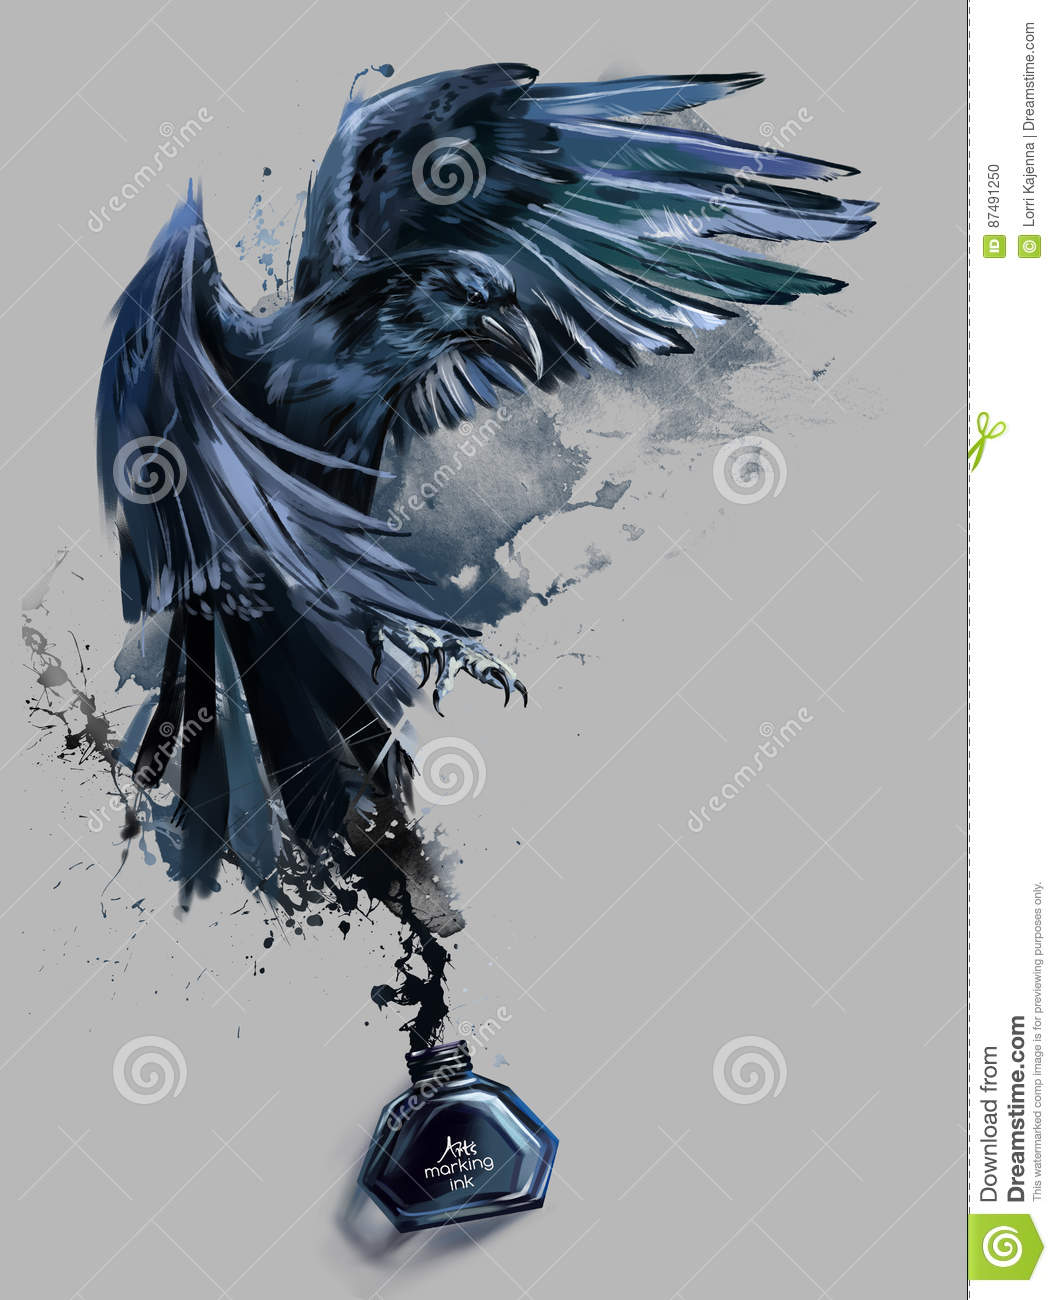 Parrot Home Decor Trend Flying High: Raven Watercolor Painting Stock Illustration. Illustration